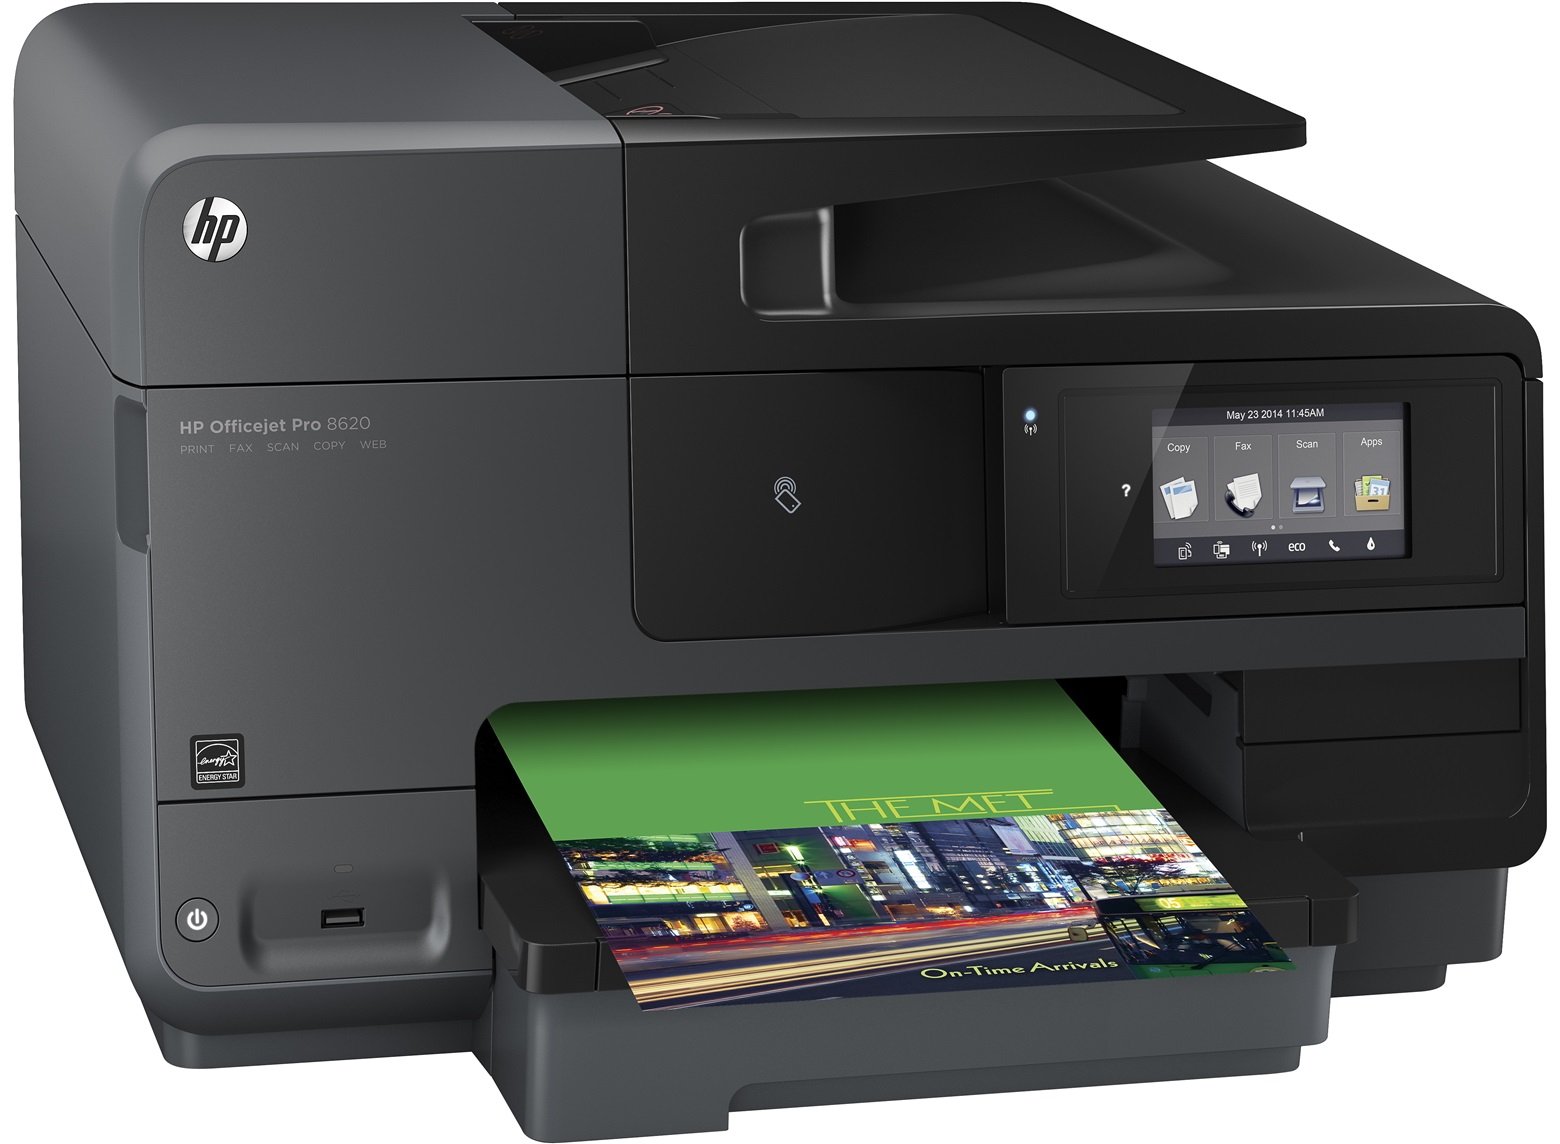 HP OfficeJet Pro 8610 e-All-in-One Ink